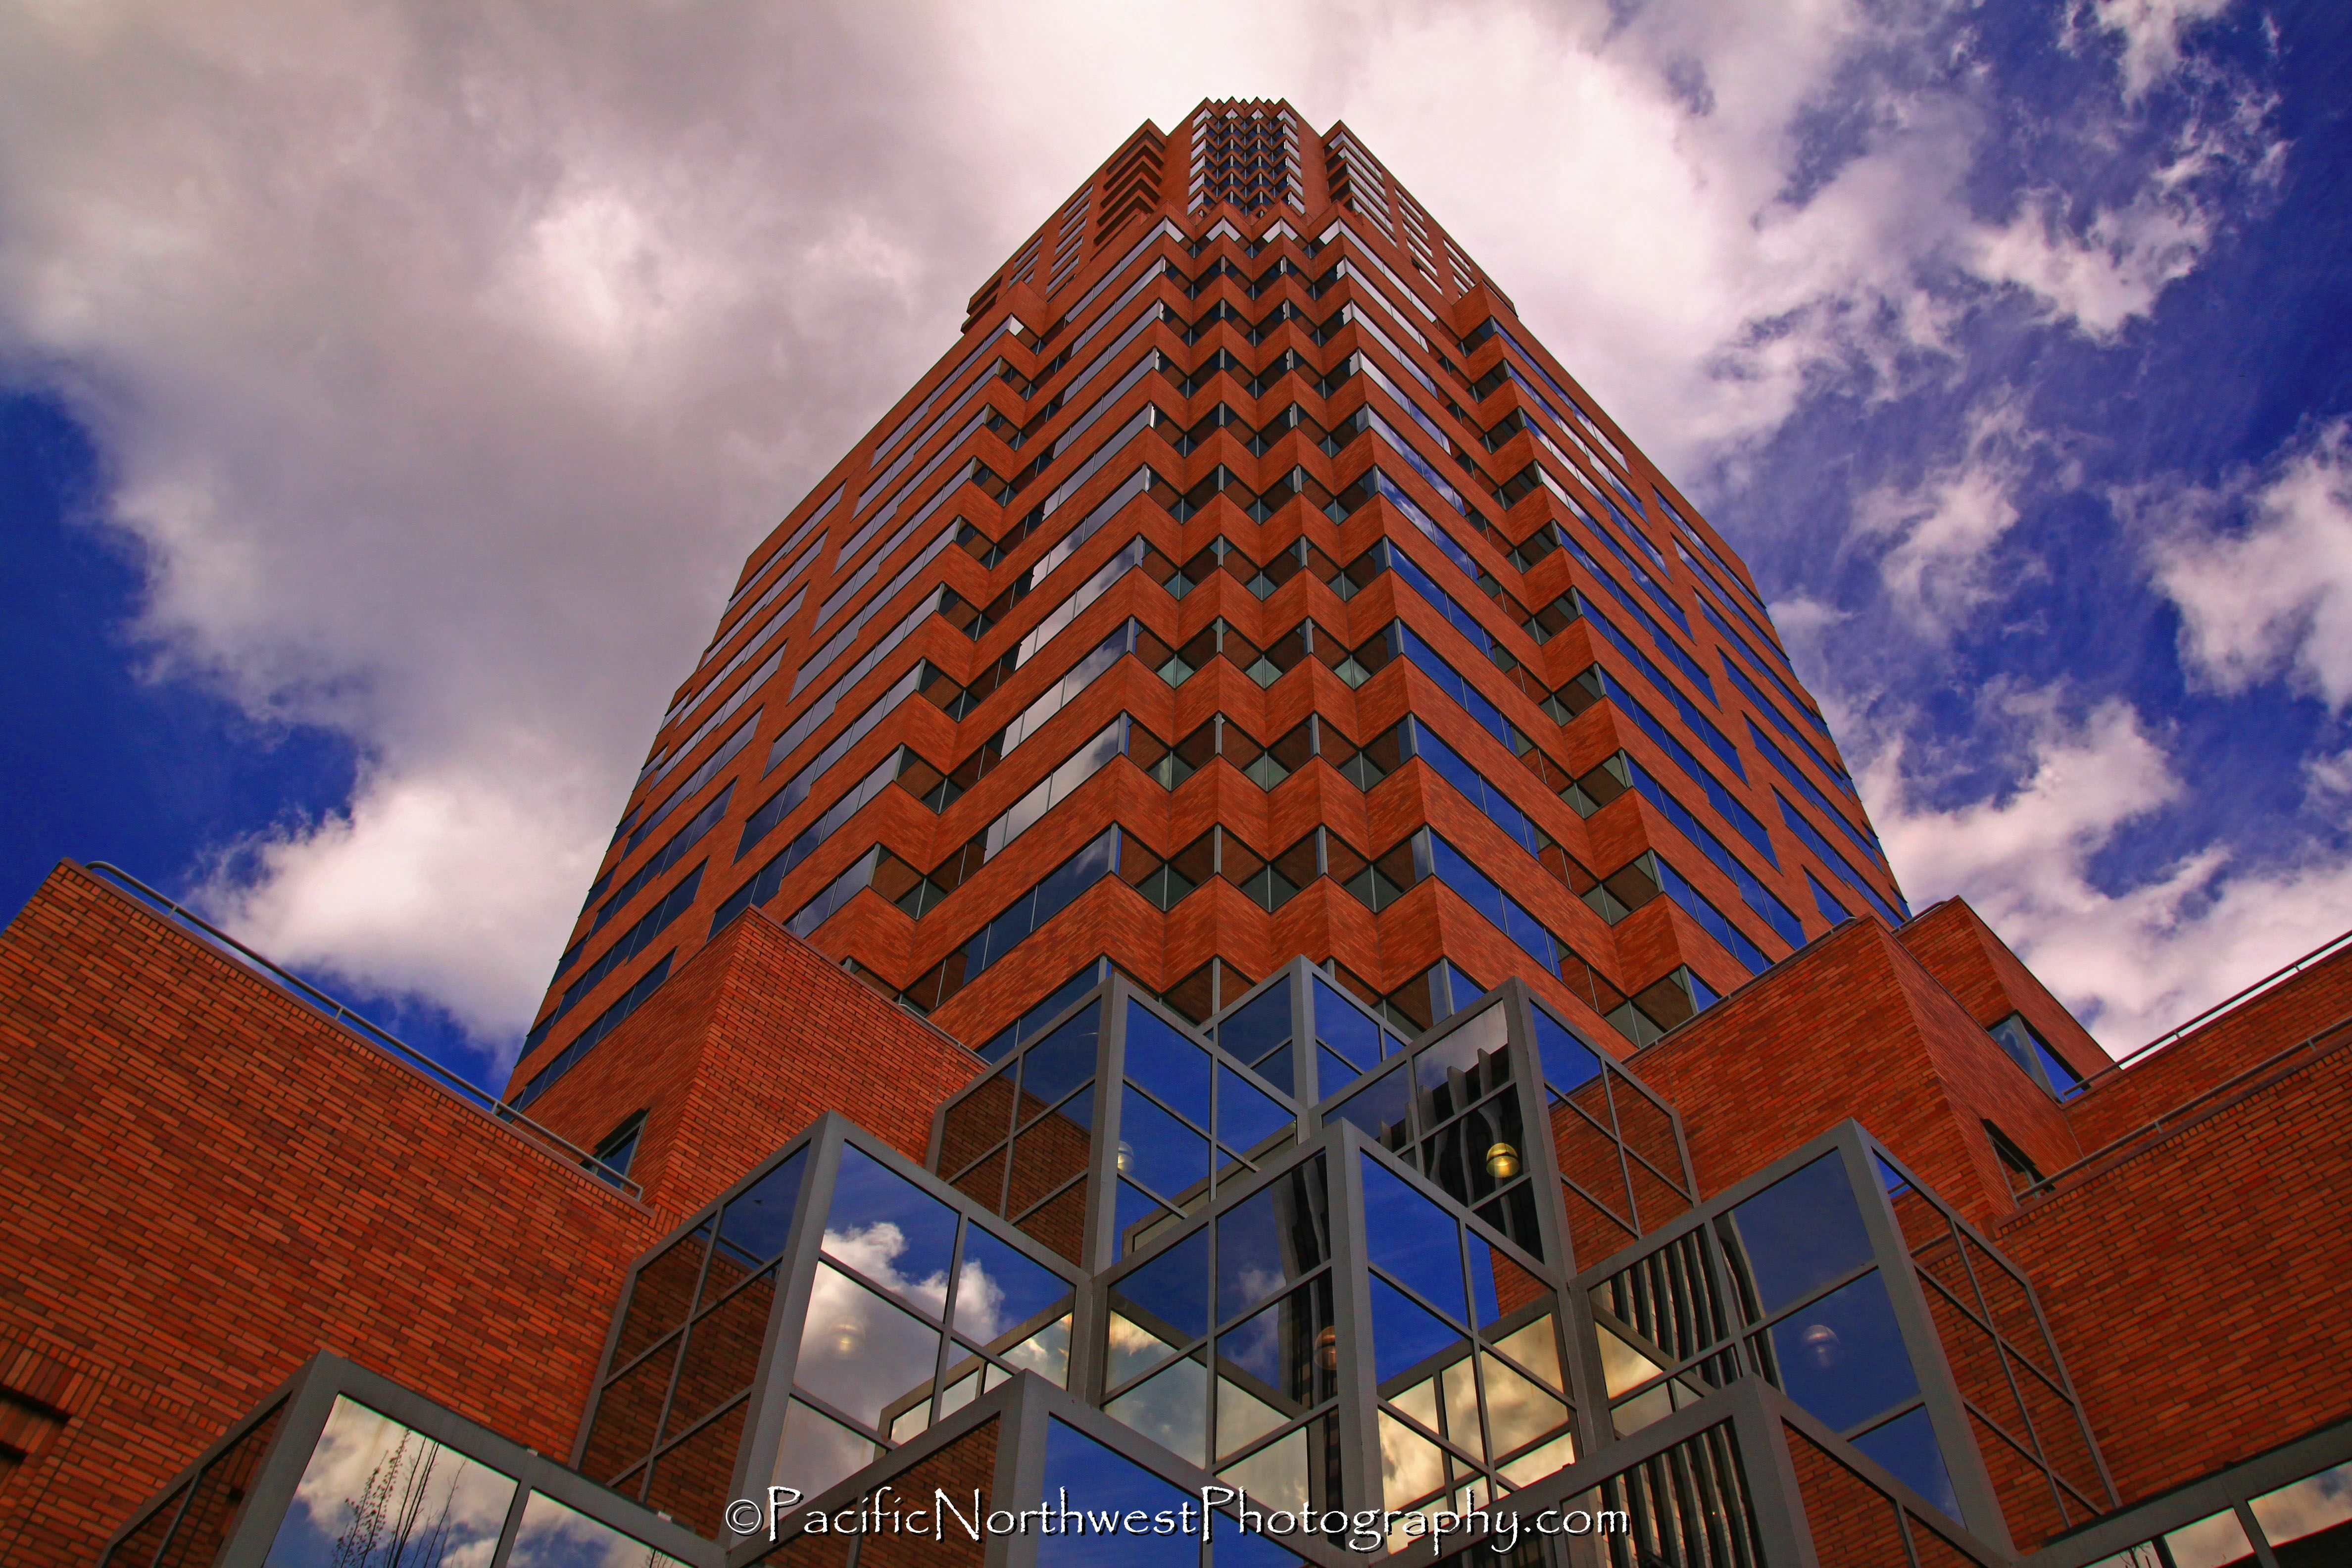 KOIN Tower in Portland, OR